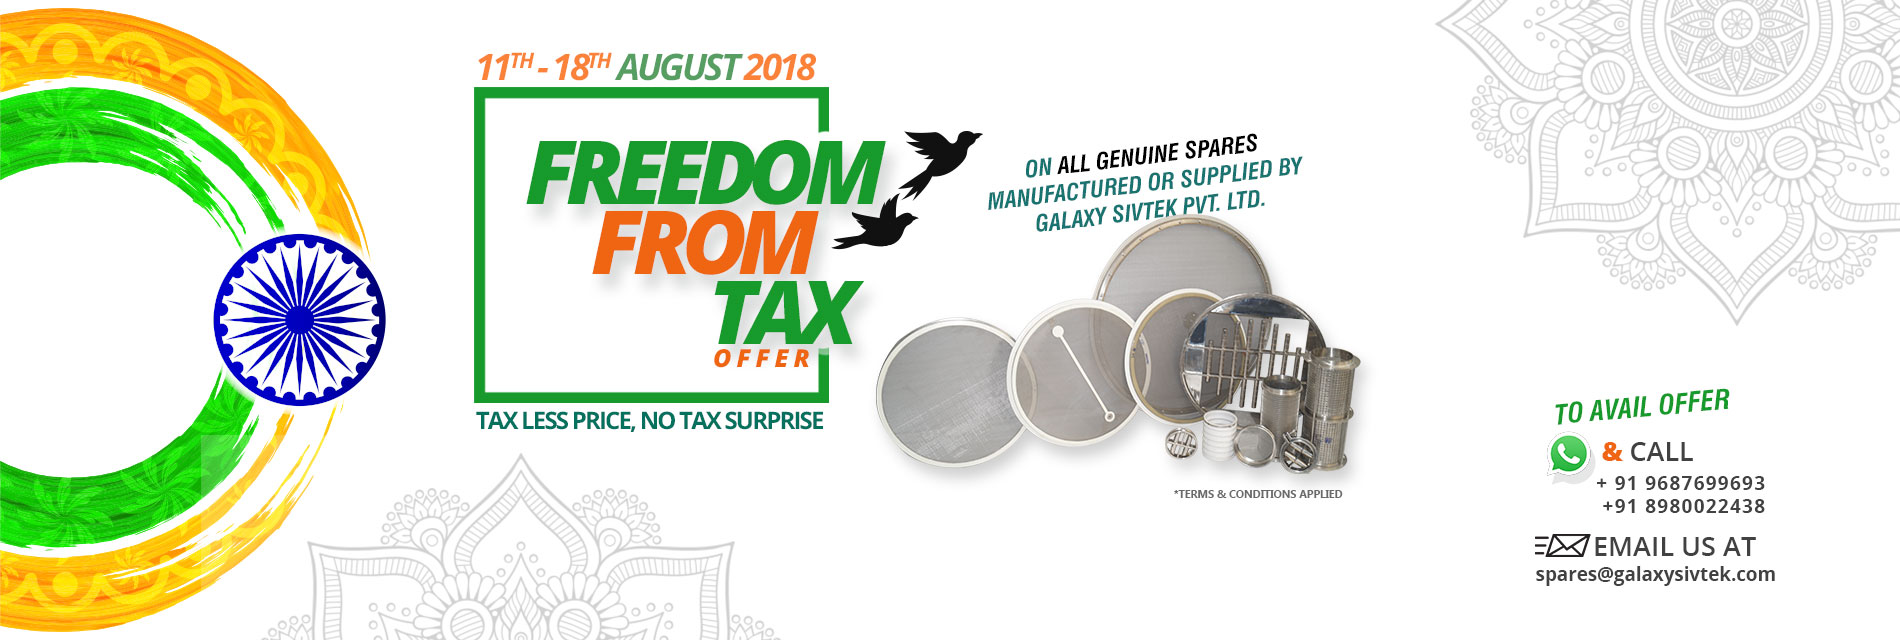 Freedom From Tax